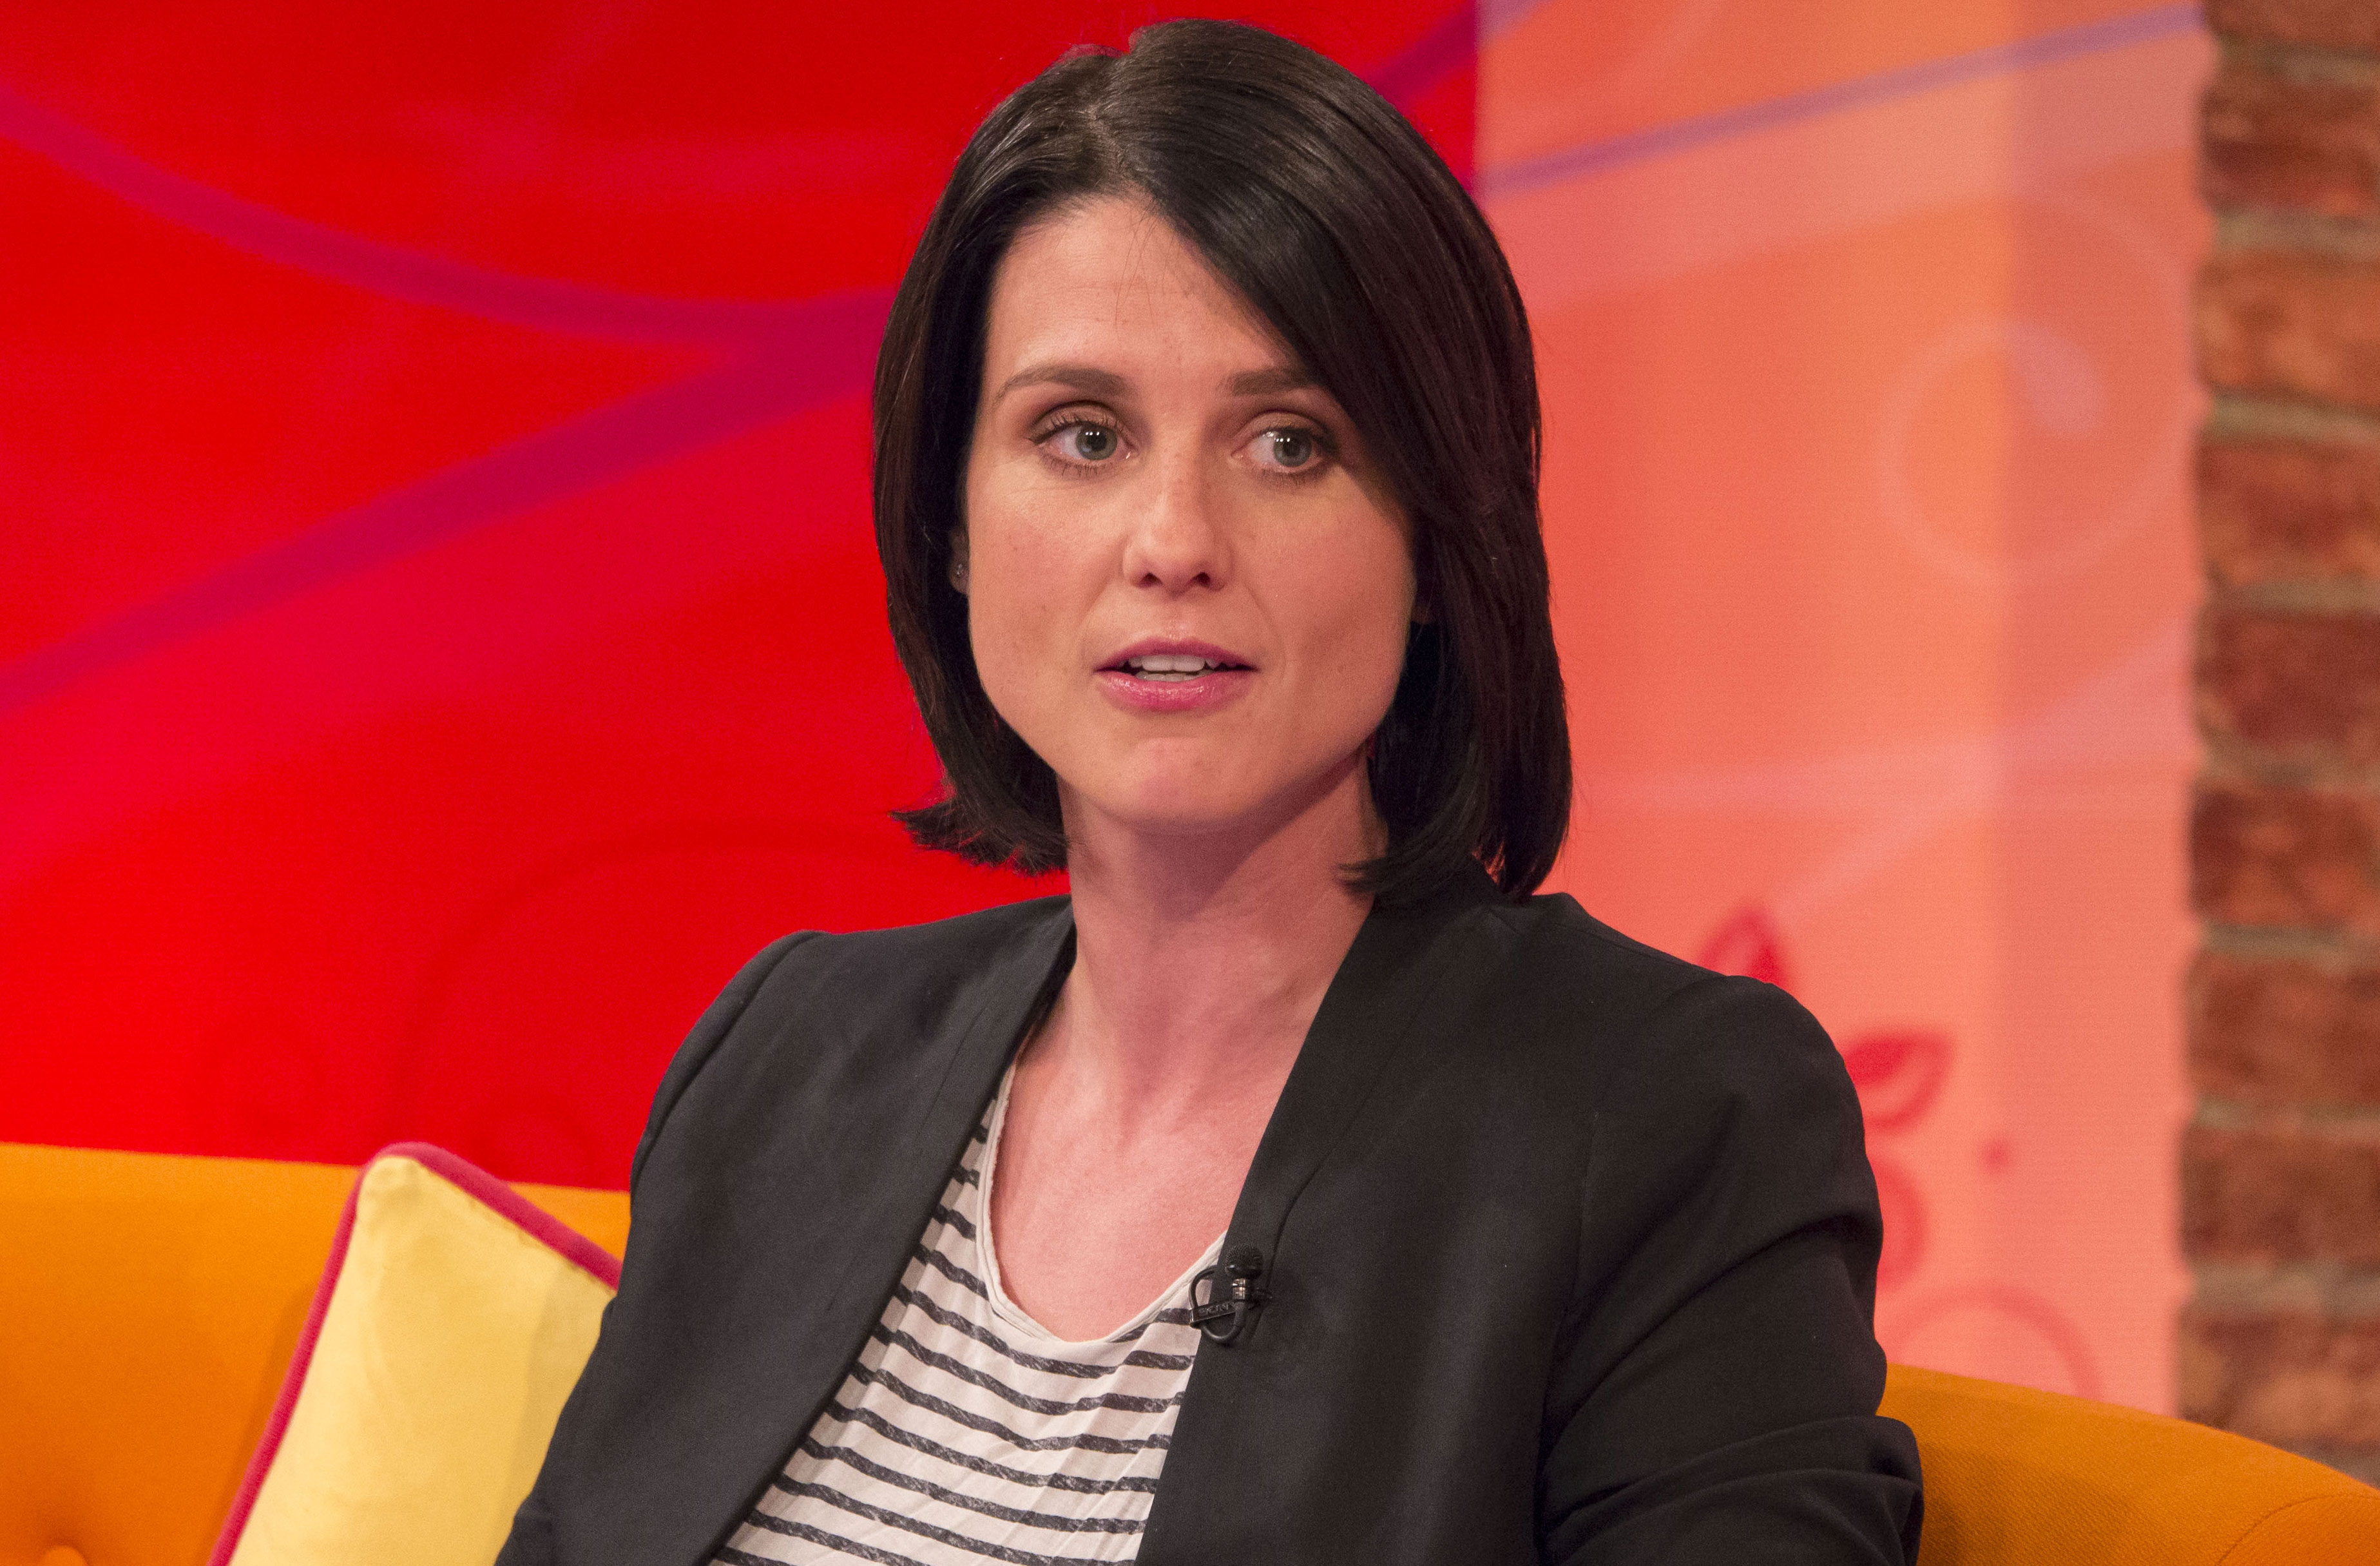 Waterloo Road Star Heather Peace Rages At Homophobic Nanny